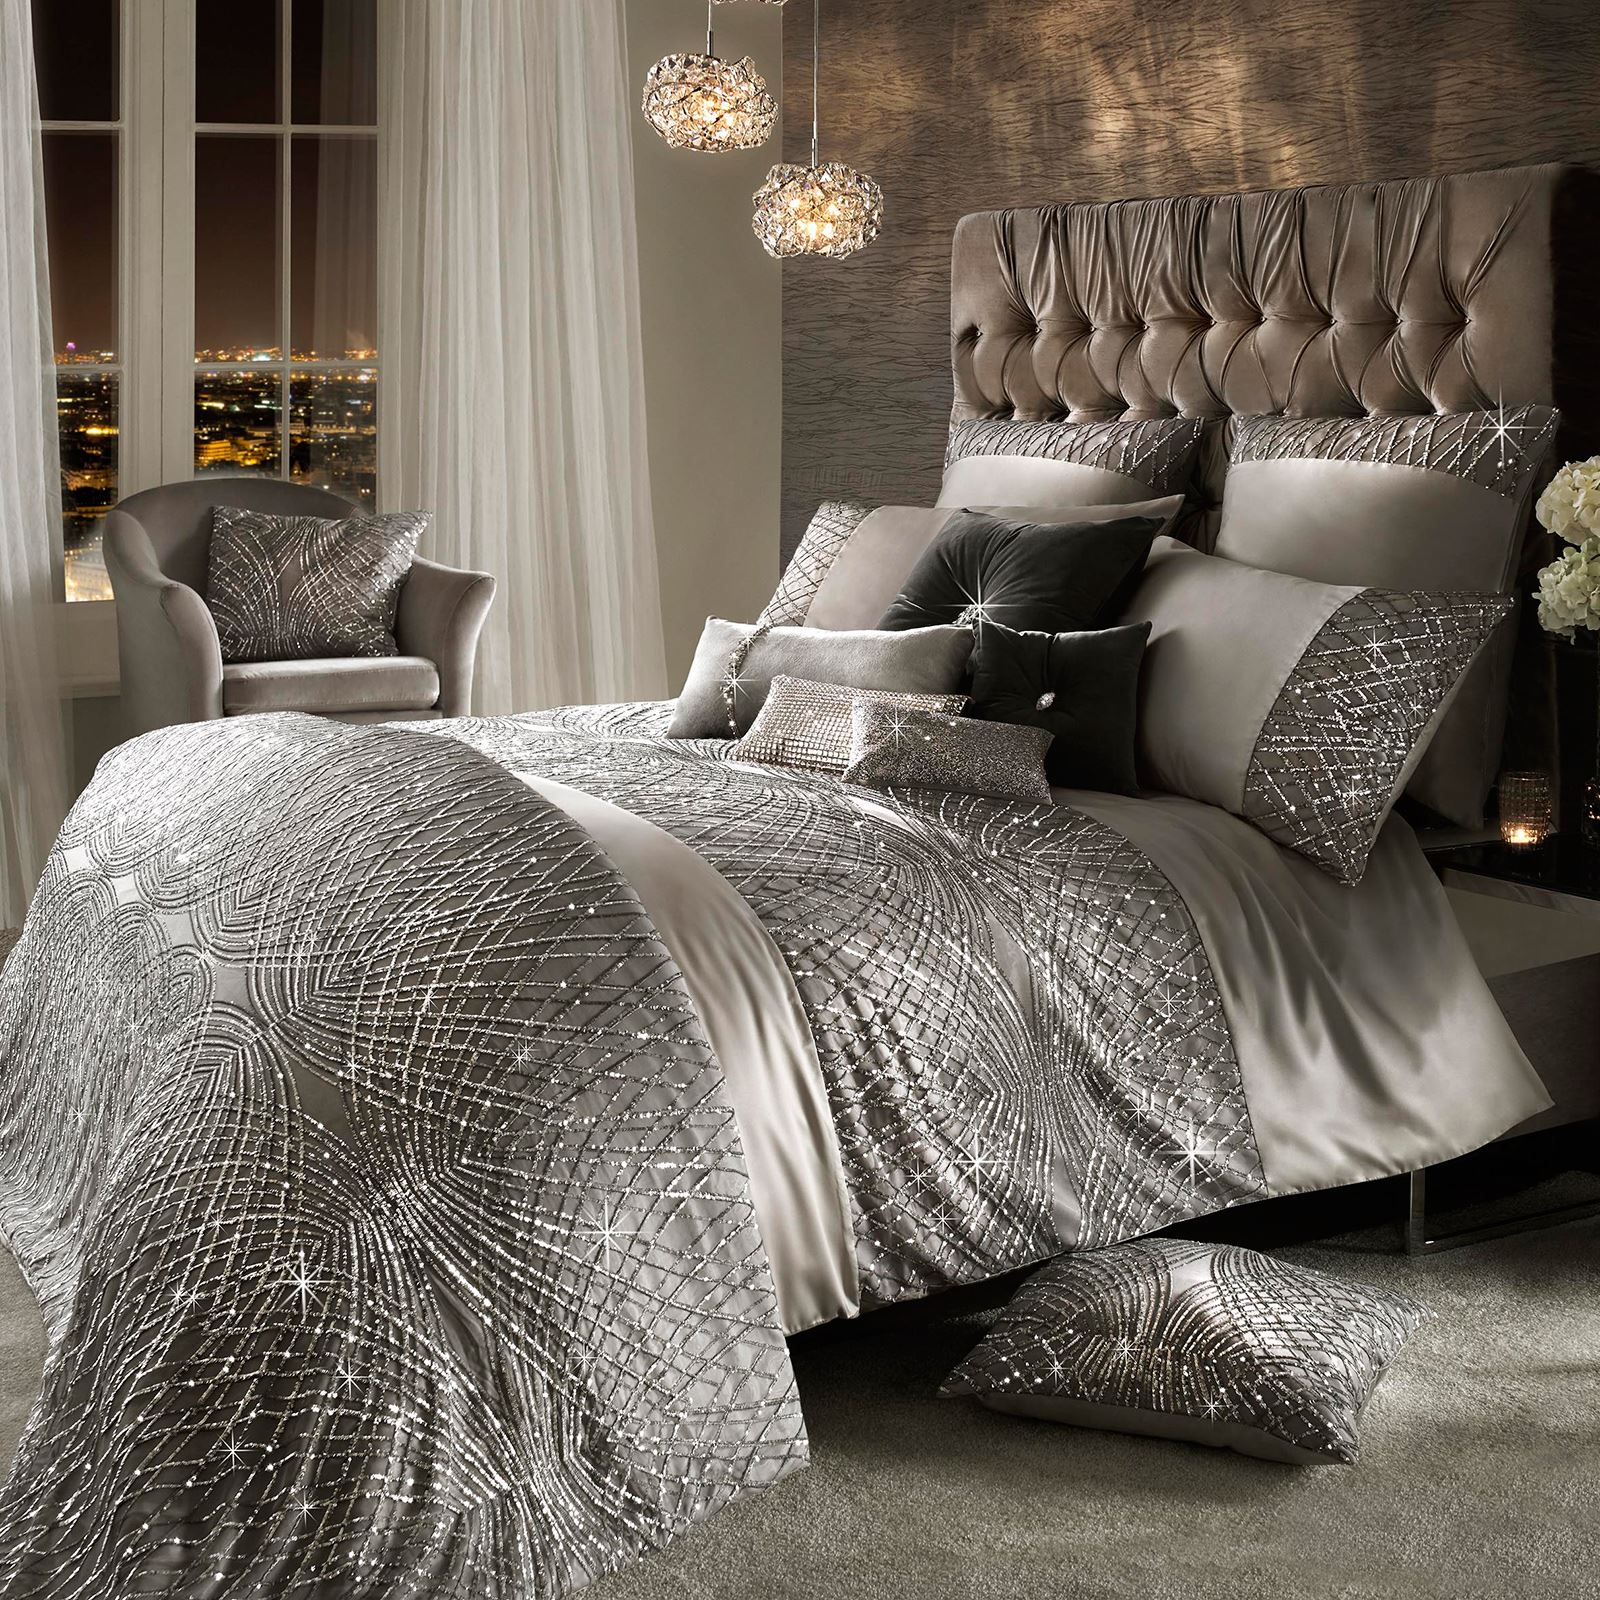 hotel pinzon thread sateen grey cotton count egyptian duvet cover home dp silver stitch queen amazon kitchen full com